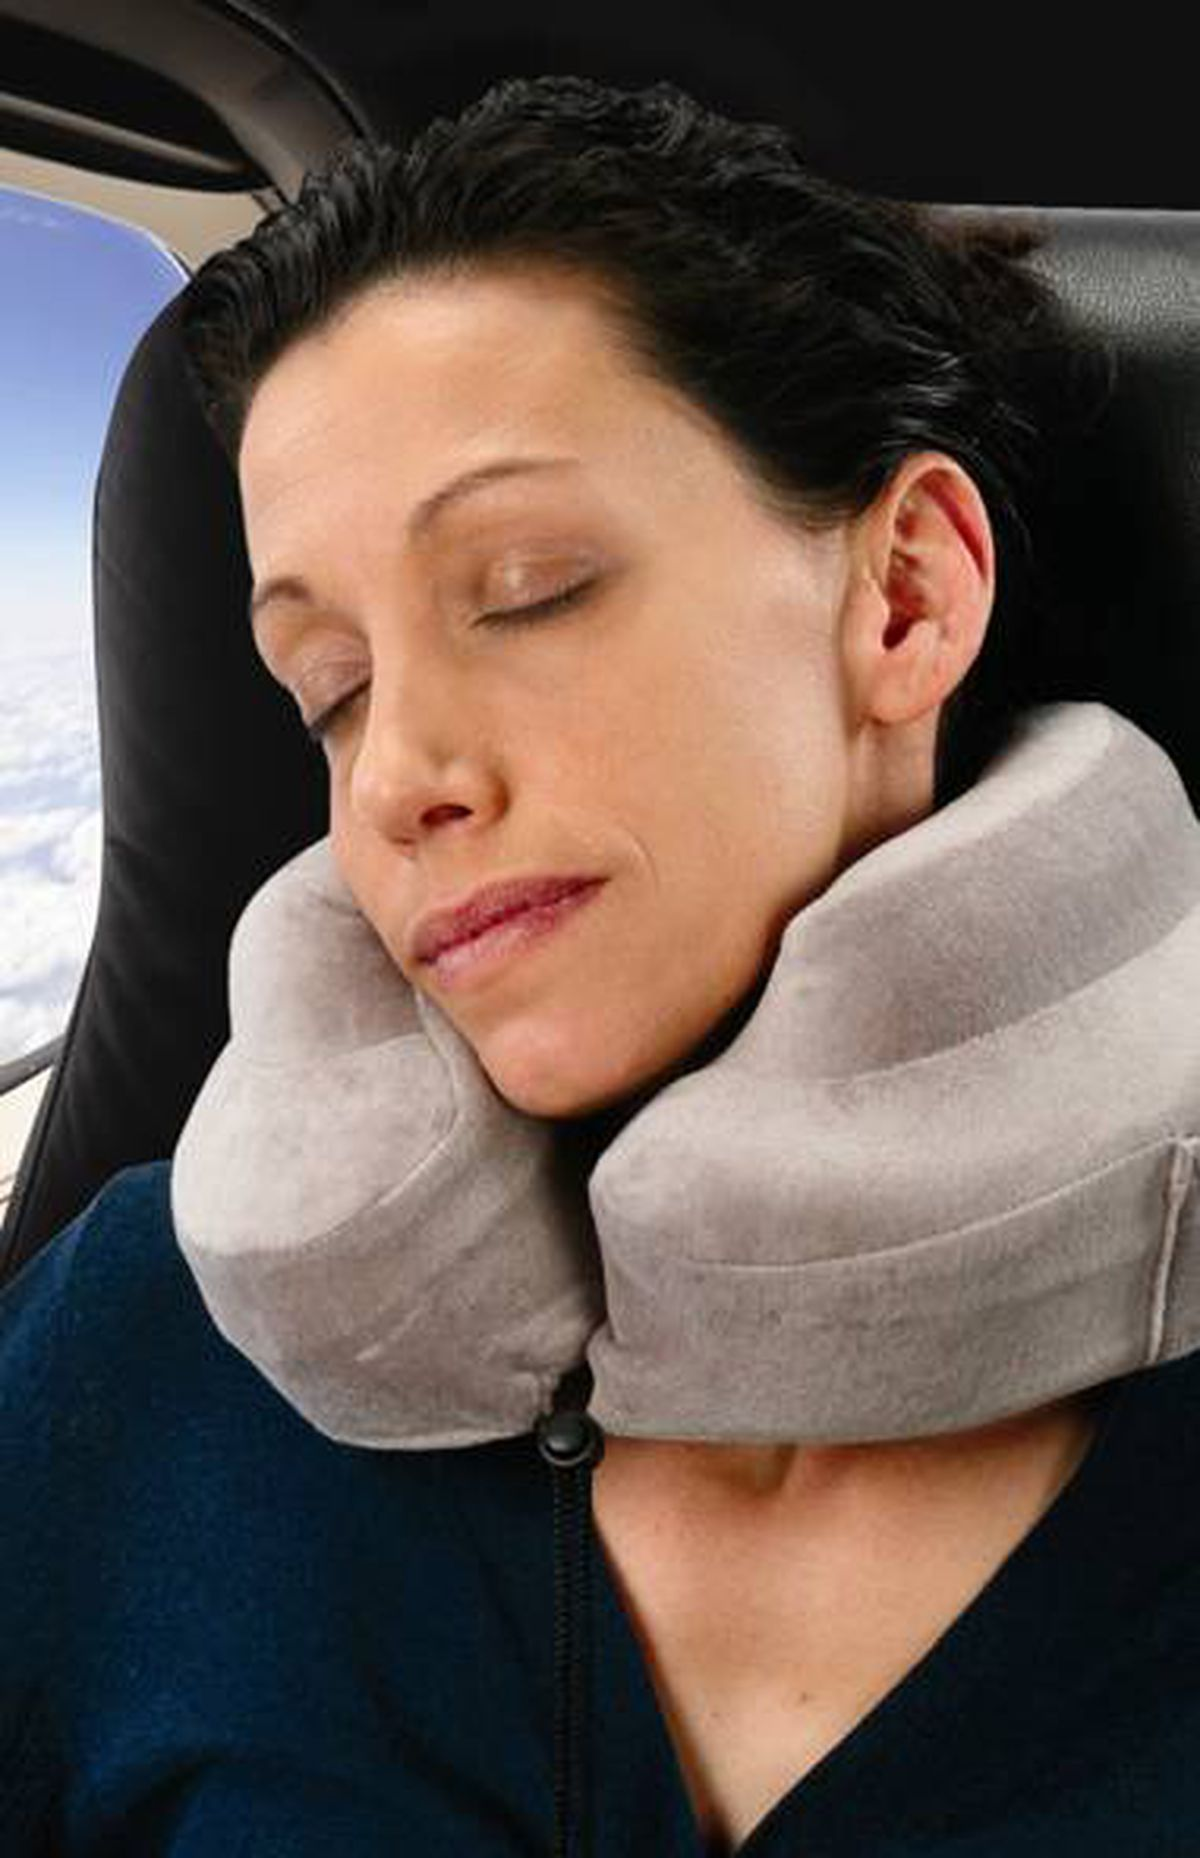 Sleep on it Tired of travelling with a stiff neck and little sleep? The Complete Support Pillow by Cabeau outperforms the average inflatable travel pillow with its ergonomically designed, soft memory foam structure that cradles the neck and guards against head bobbing. Added comfort comes from the cozy velour cover that is easy to remove and wash. If you need music to lull you to sleep, tuck an MP3 player into the built-in side pocket, pop in the memory foam ear plugs and start dreaming. $34.99; completesupportpillow.com